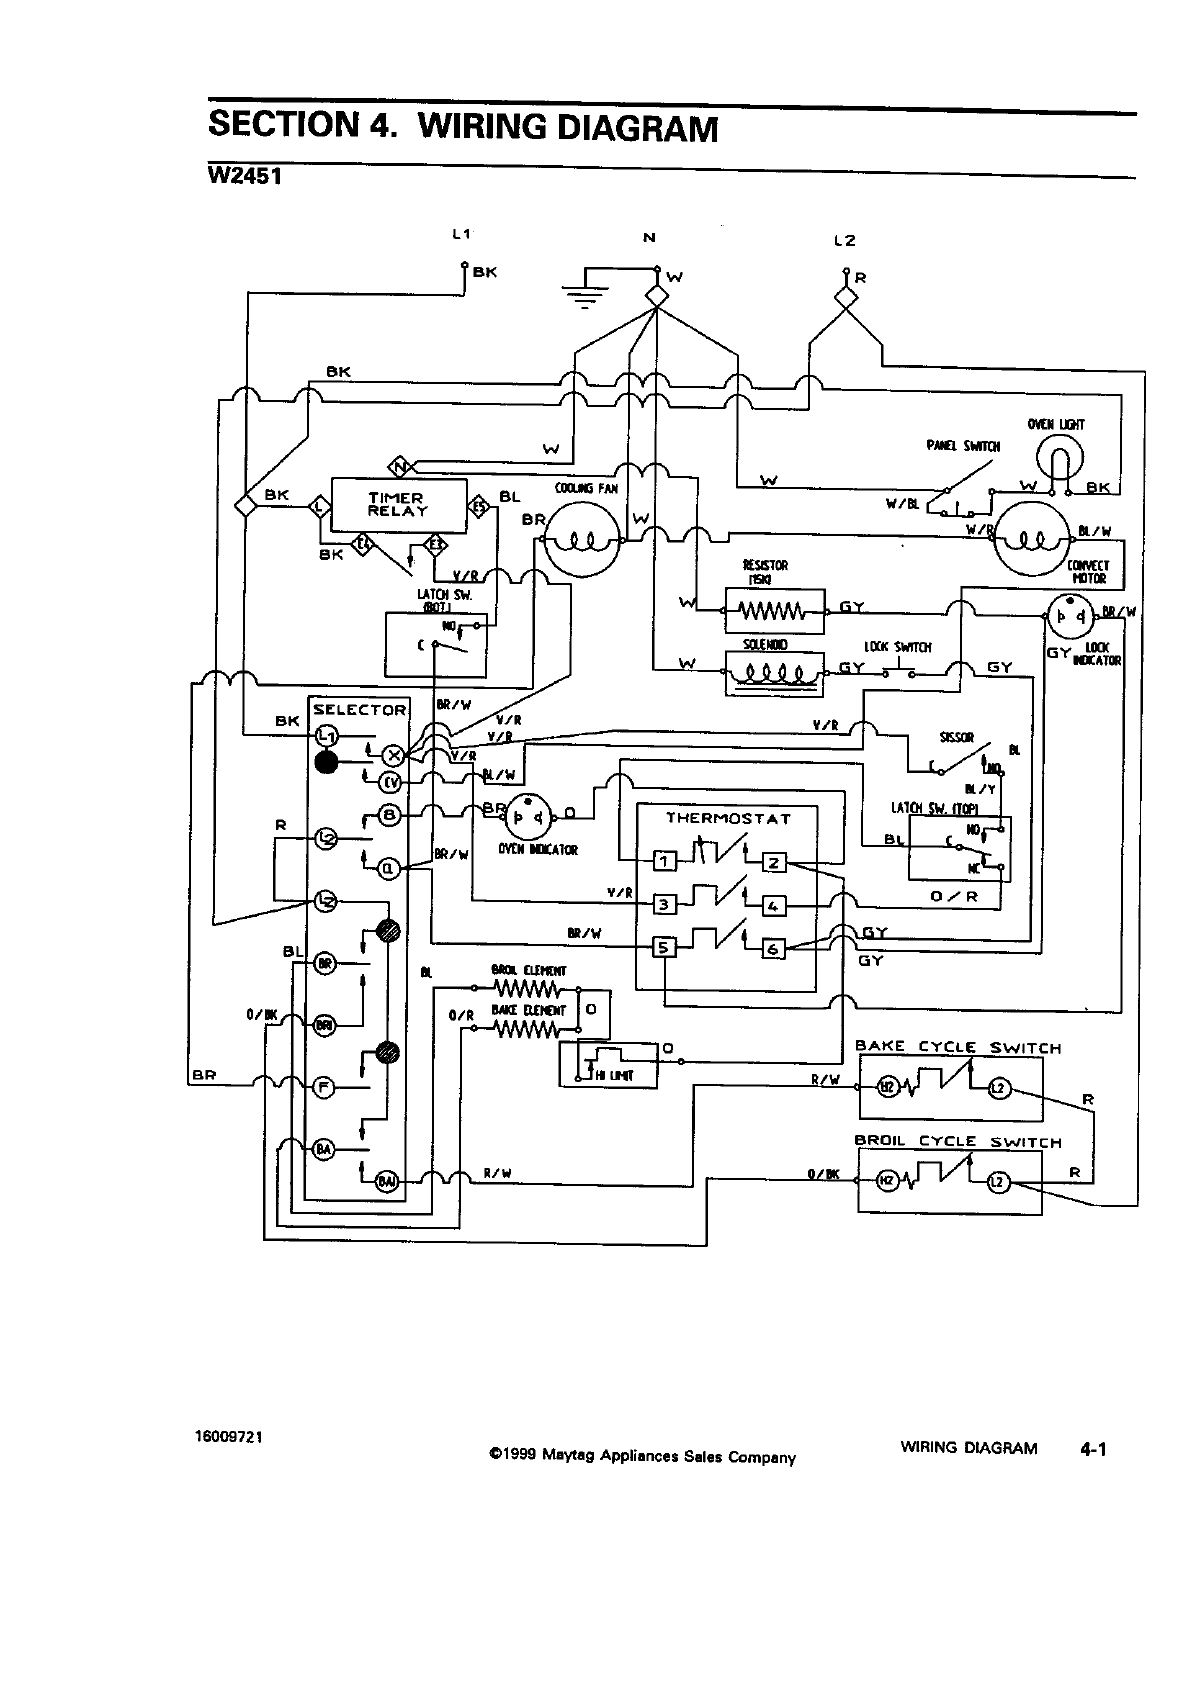 52b2f415 78fa 4259 88c0 be210120d02a bg21 page 33 of jenn air oven ww30430p user guide manualsonline com Basic Electrical Wiring Diagrams at edmiracle.co